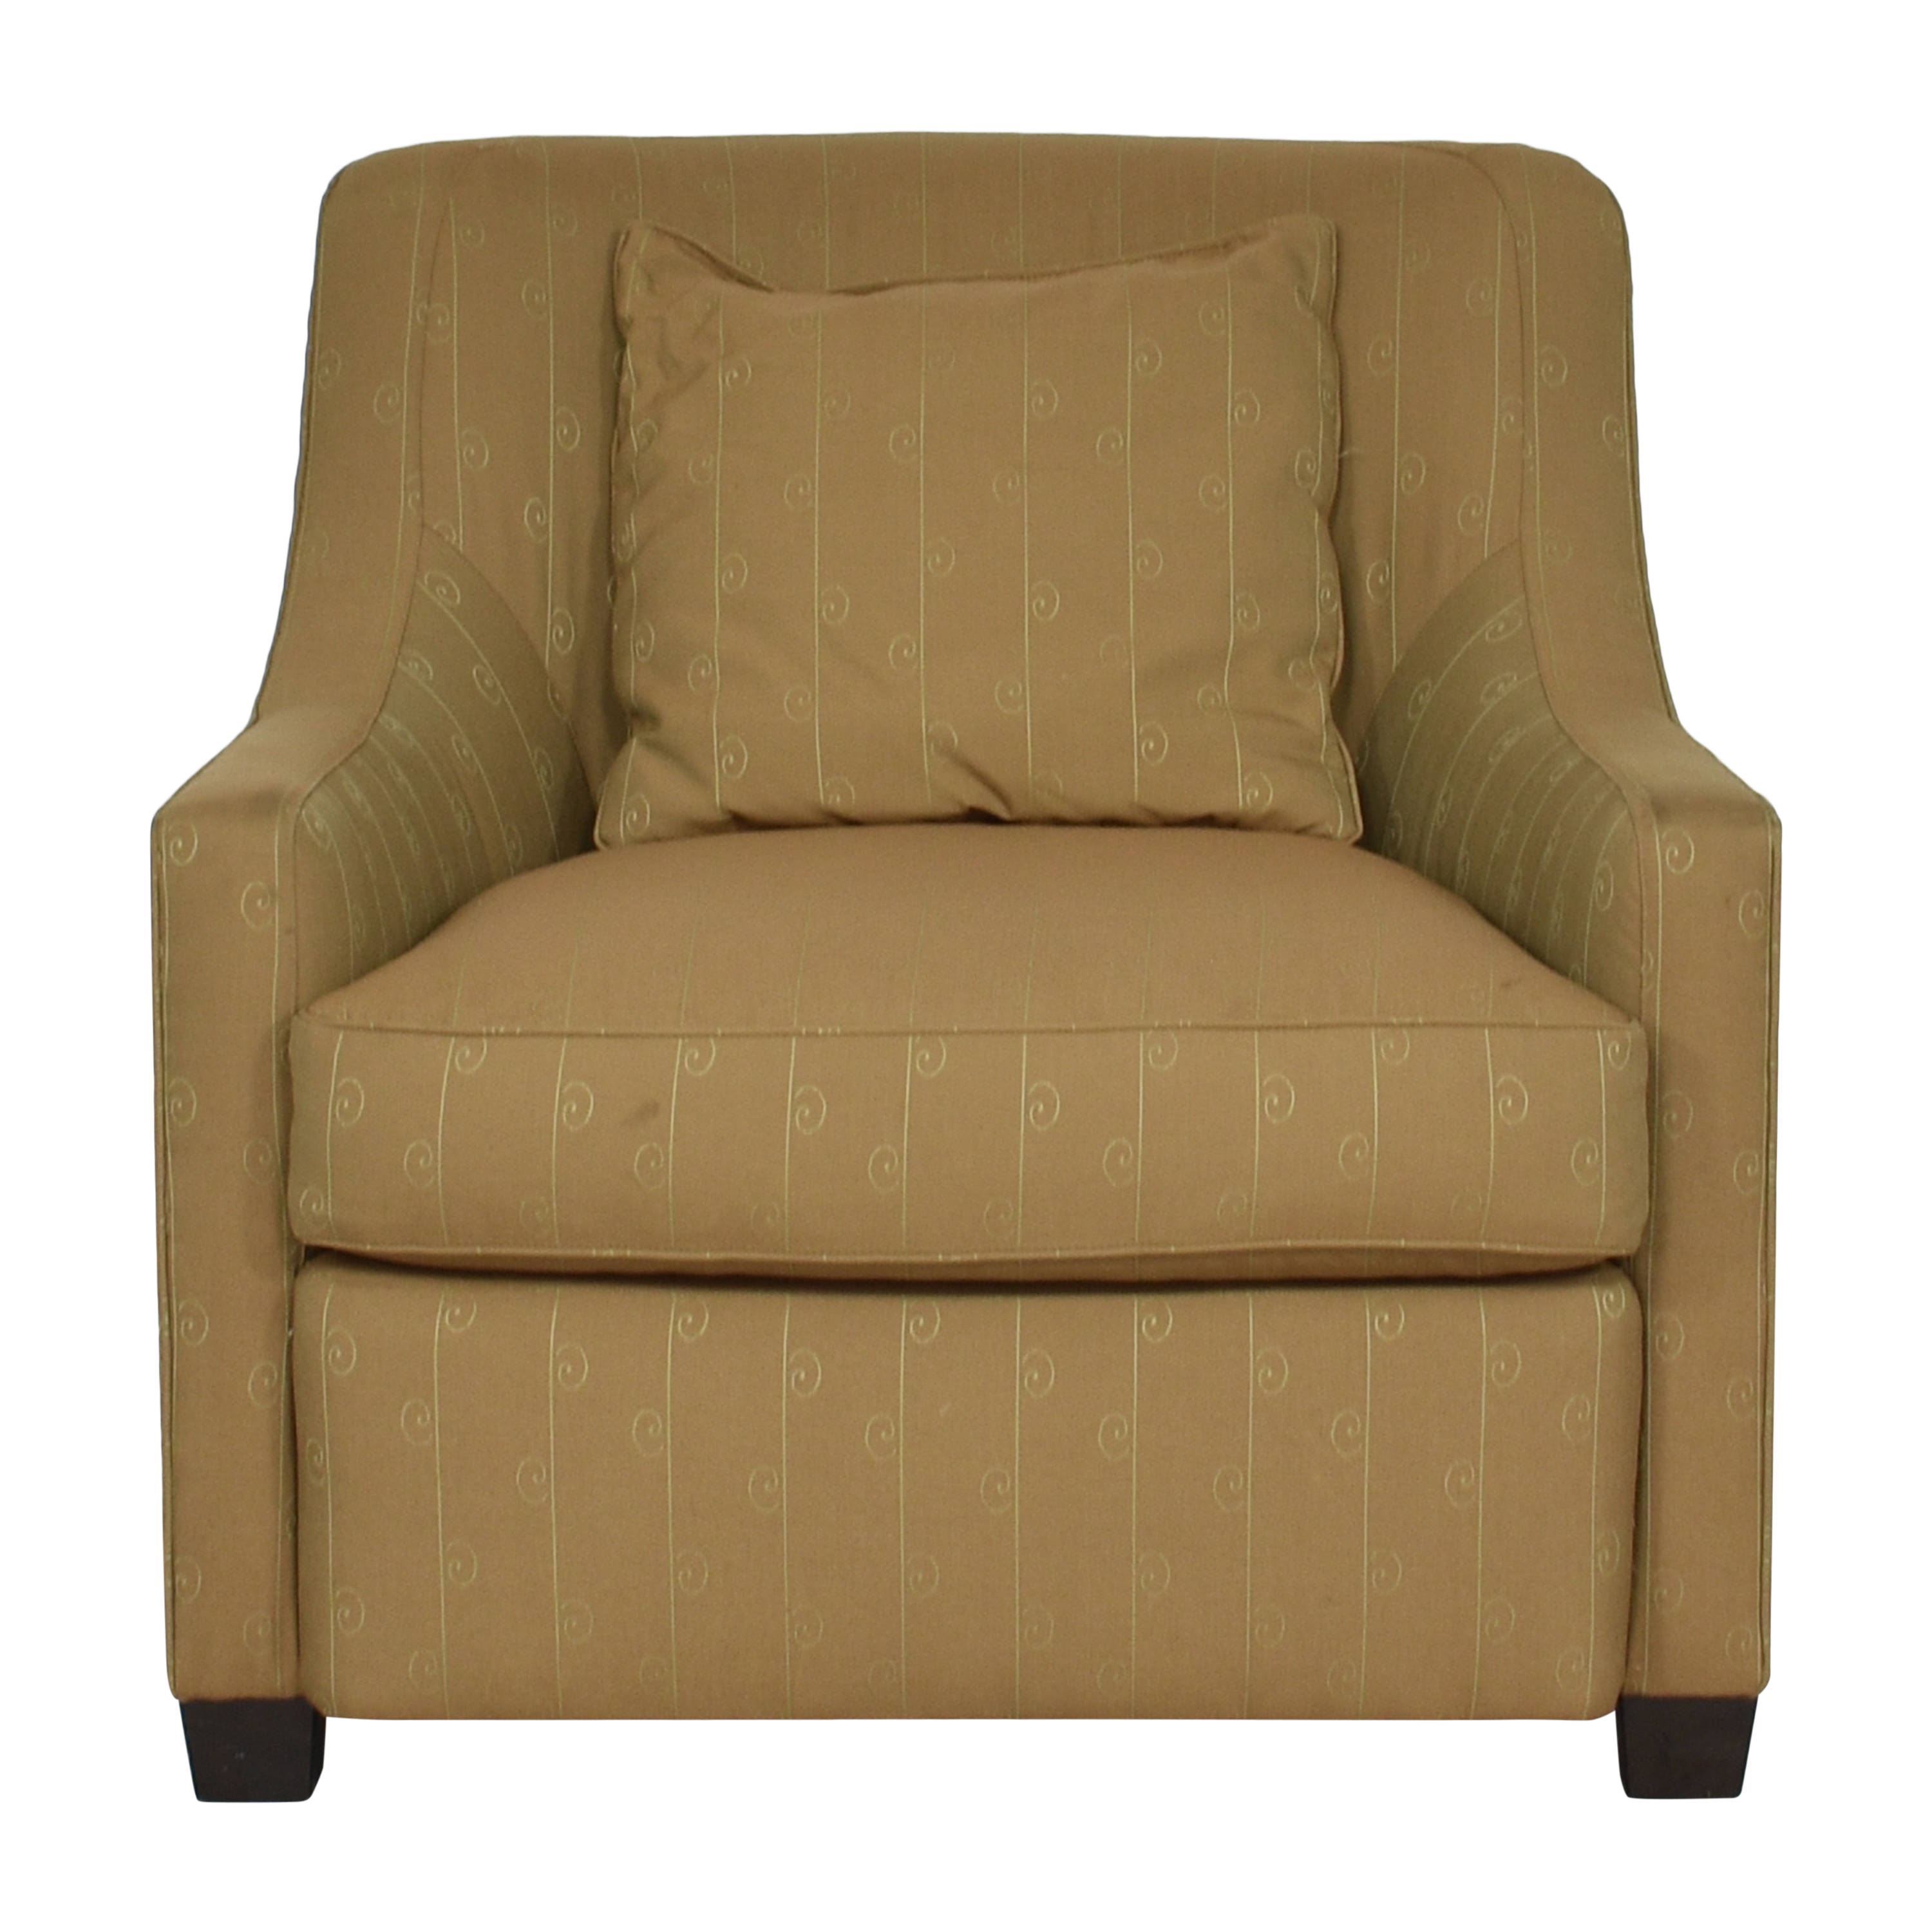 Baker Furniture Baker Furniture Accent Chair ct